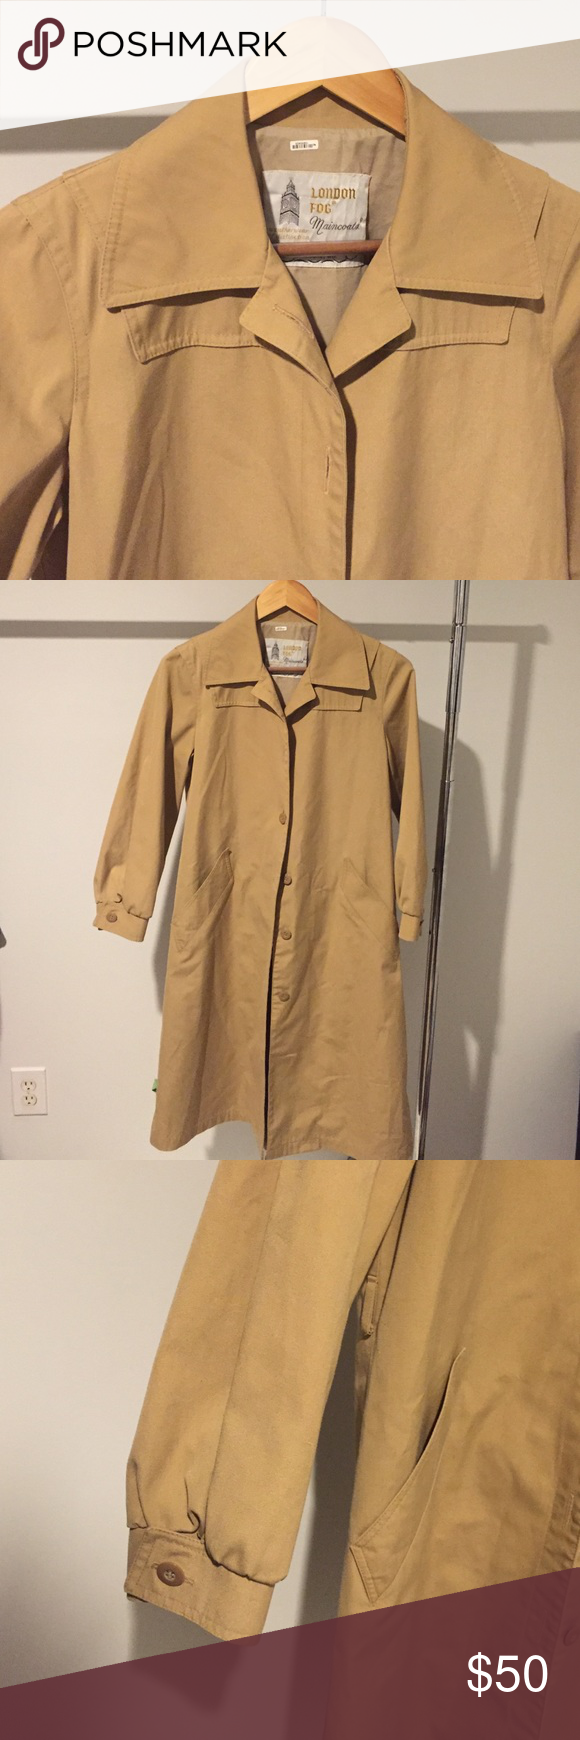 "Feminine London Fog Trench Coat Feminine Vintage London Fog Coat. Size 4 Petite. In good condition. Approx 39 1/2 "" from shoulder to hem. London Fog Jackets & Coats Trench Coats"